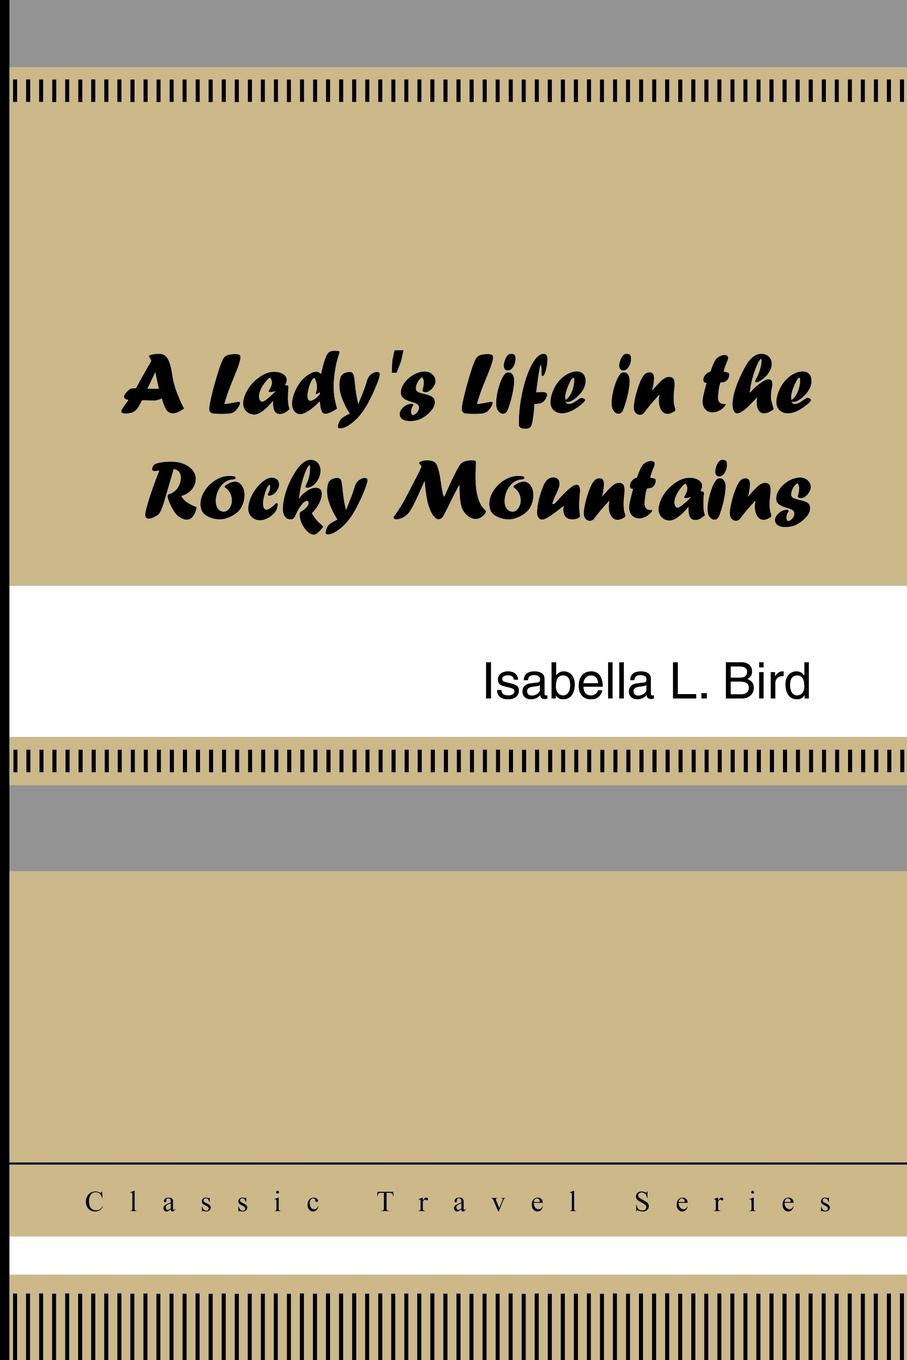 Isabella L. Bird A Lady.s Life in the Rocky Mountains the life of a young bird an explanation of a bird s first year